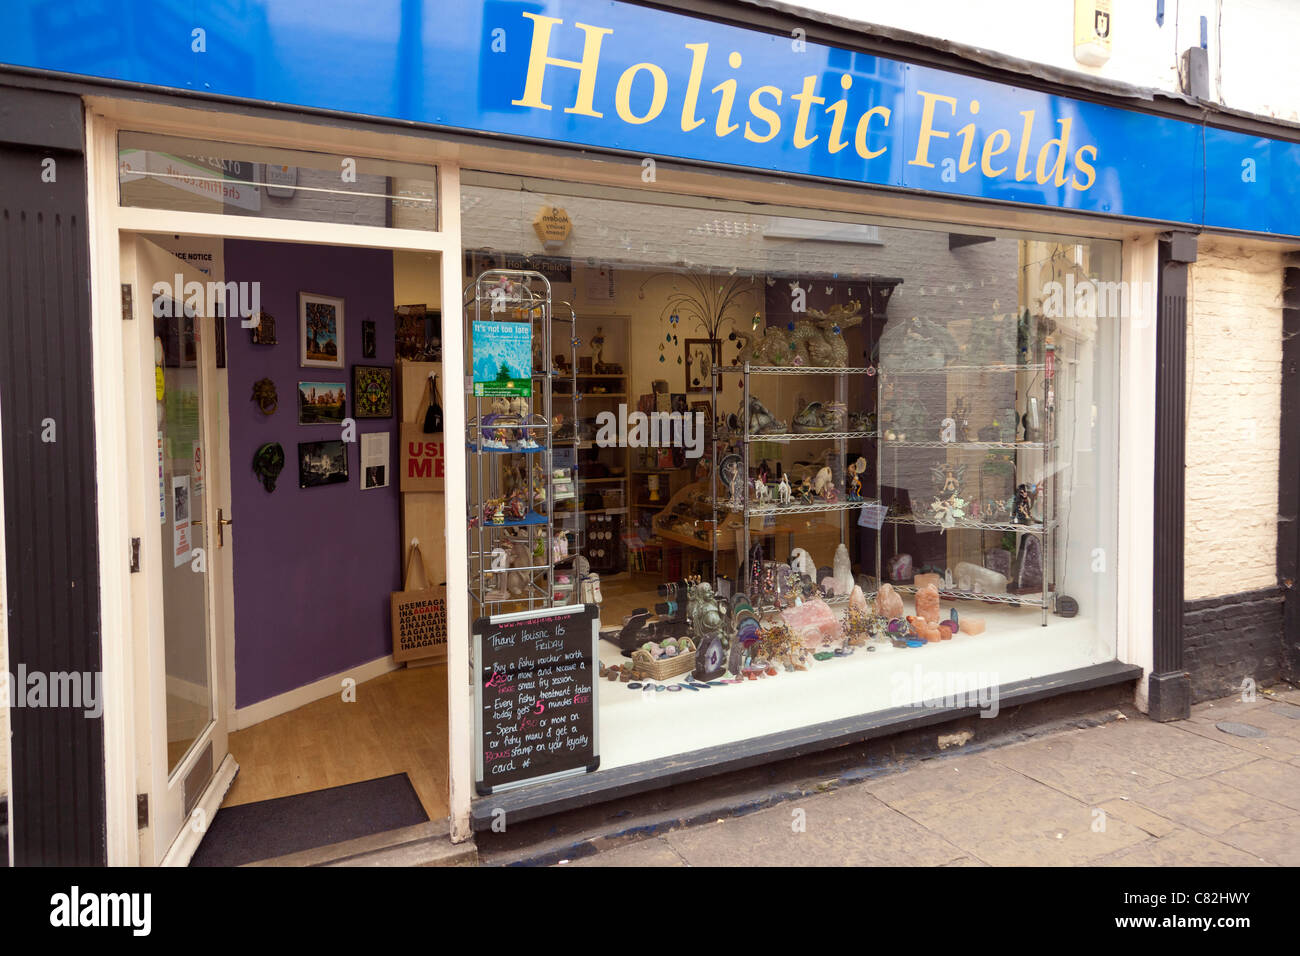 Holistic therapies shop offering a wide variety of treatments in UK - Stock Image